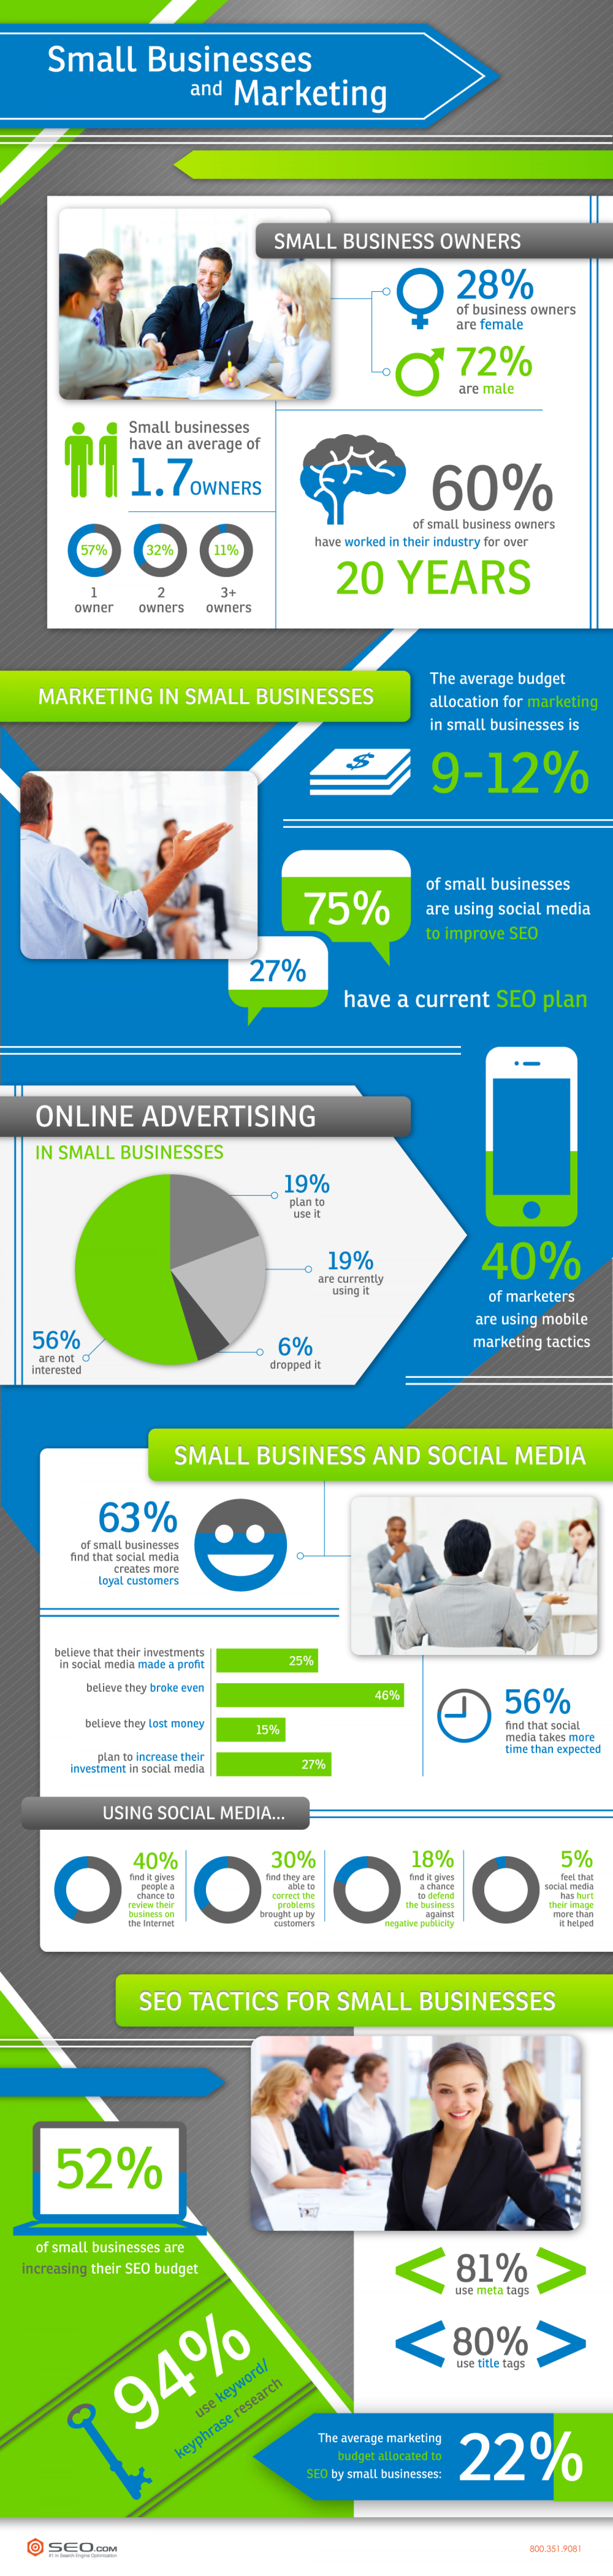 Small Business and Marketing Infographic